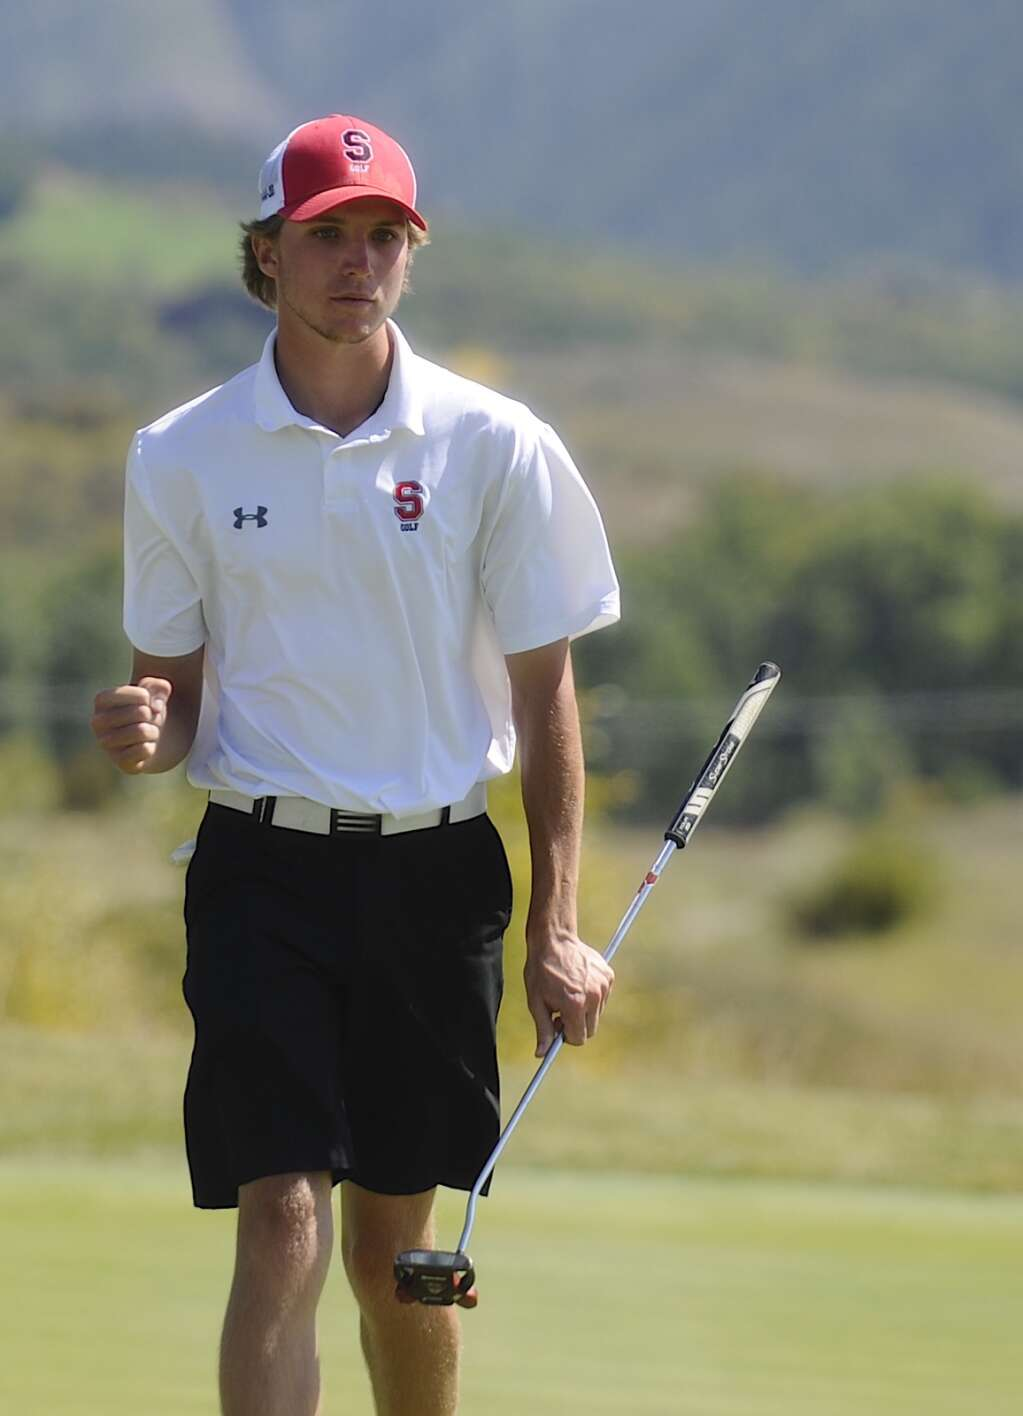 Steamboat Springs senior golfer Travis Seitz pumps his fist after putting at the Steamboat Sailor Invitational at Haymaker Golf Course on Tuesday. | Shelby Reardon/Steamboat Pilot & Today